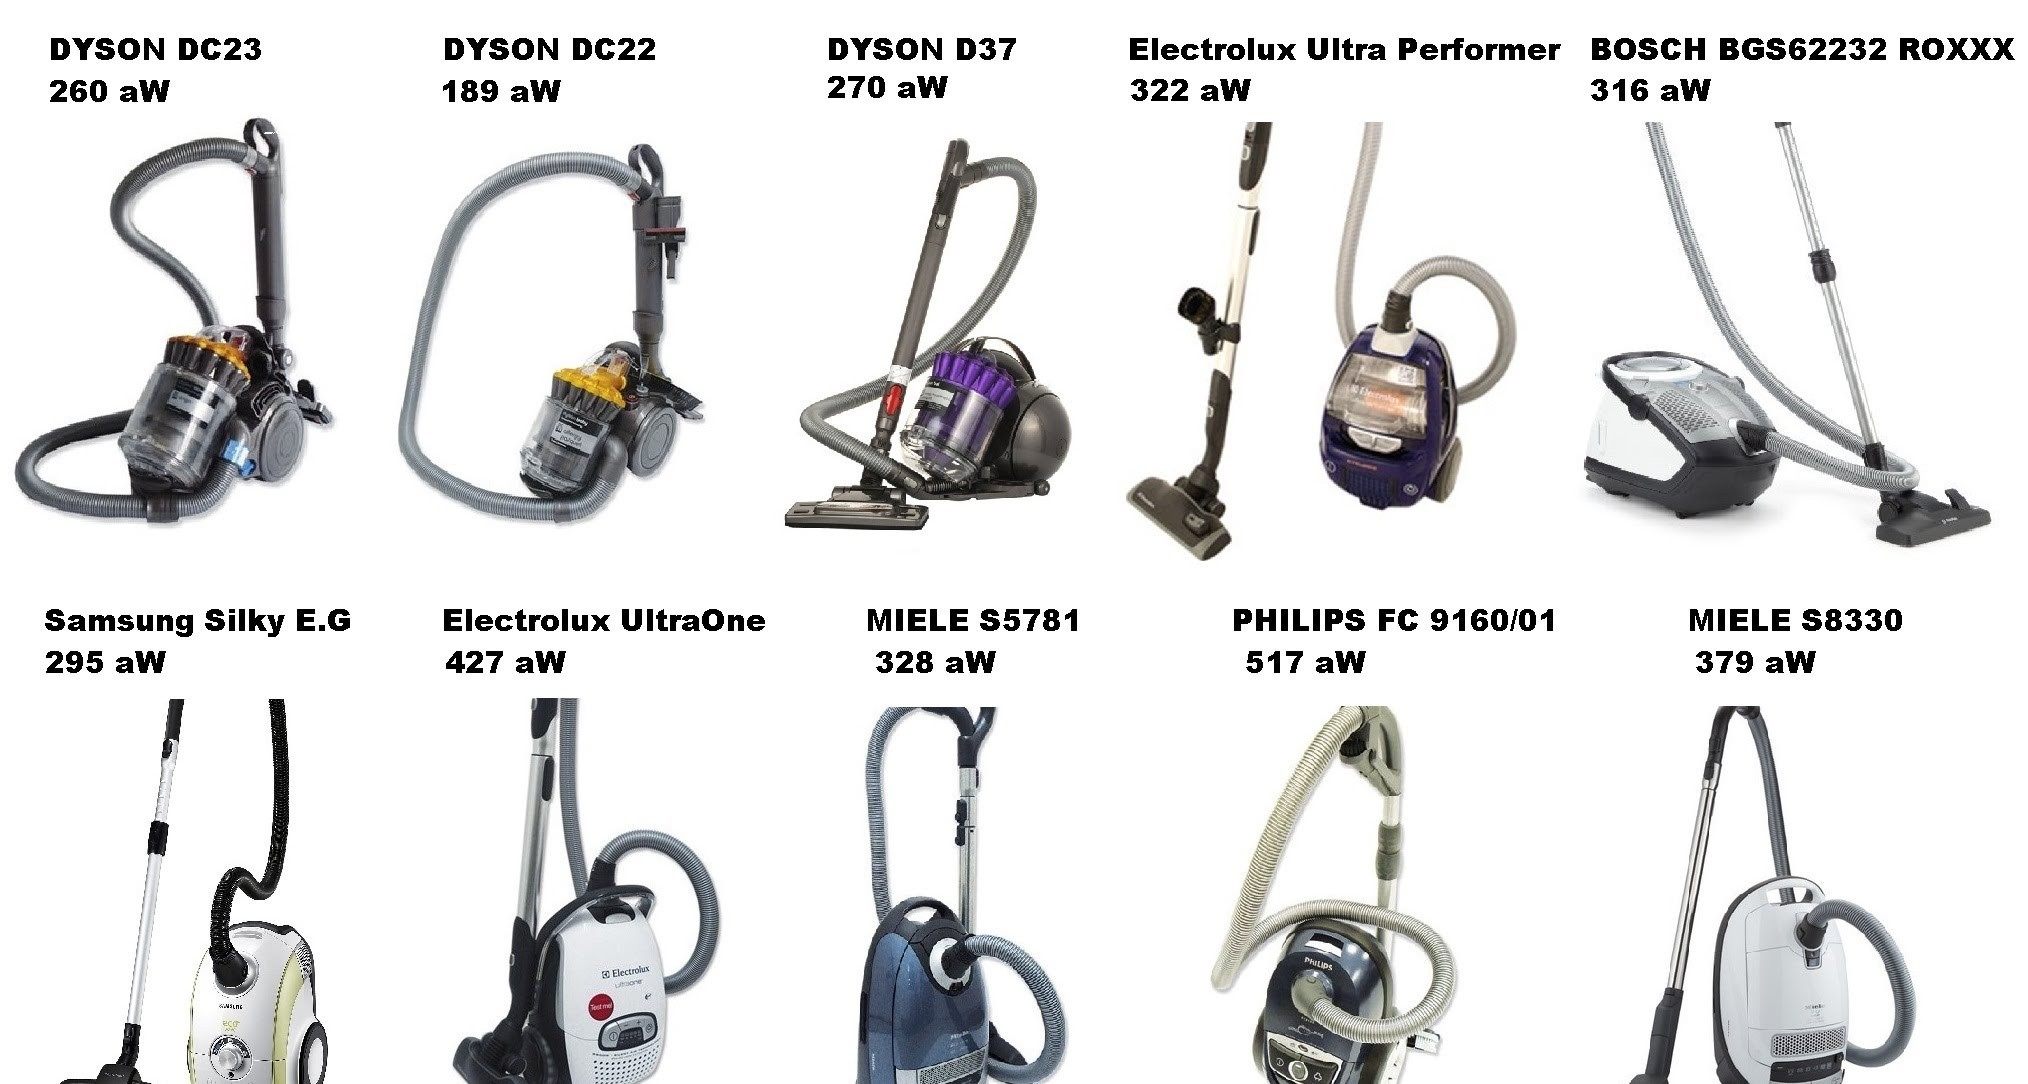 Consumer Reports Upright Vacuum Cleaner Ratings